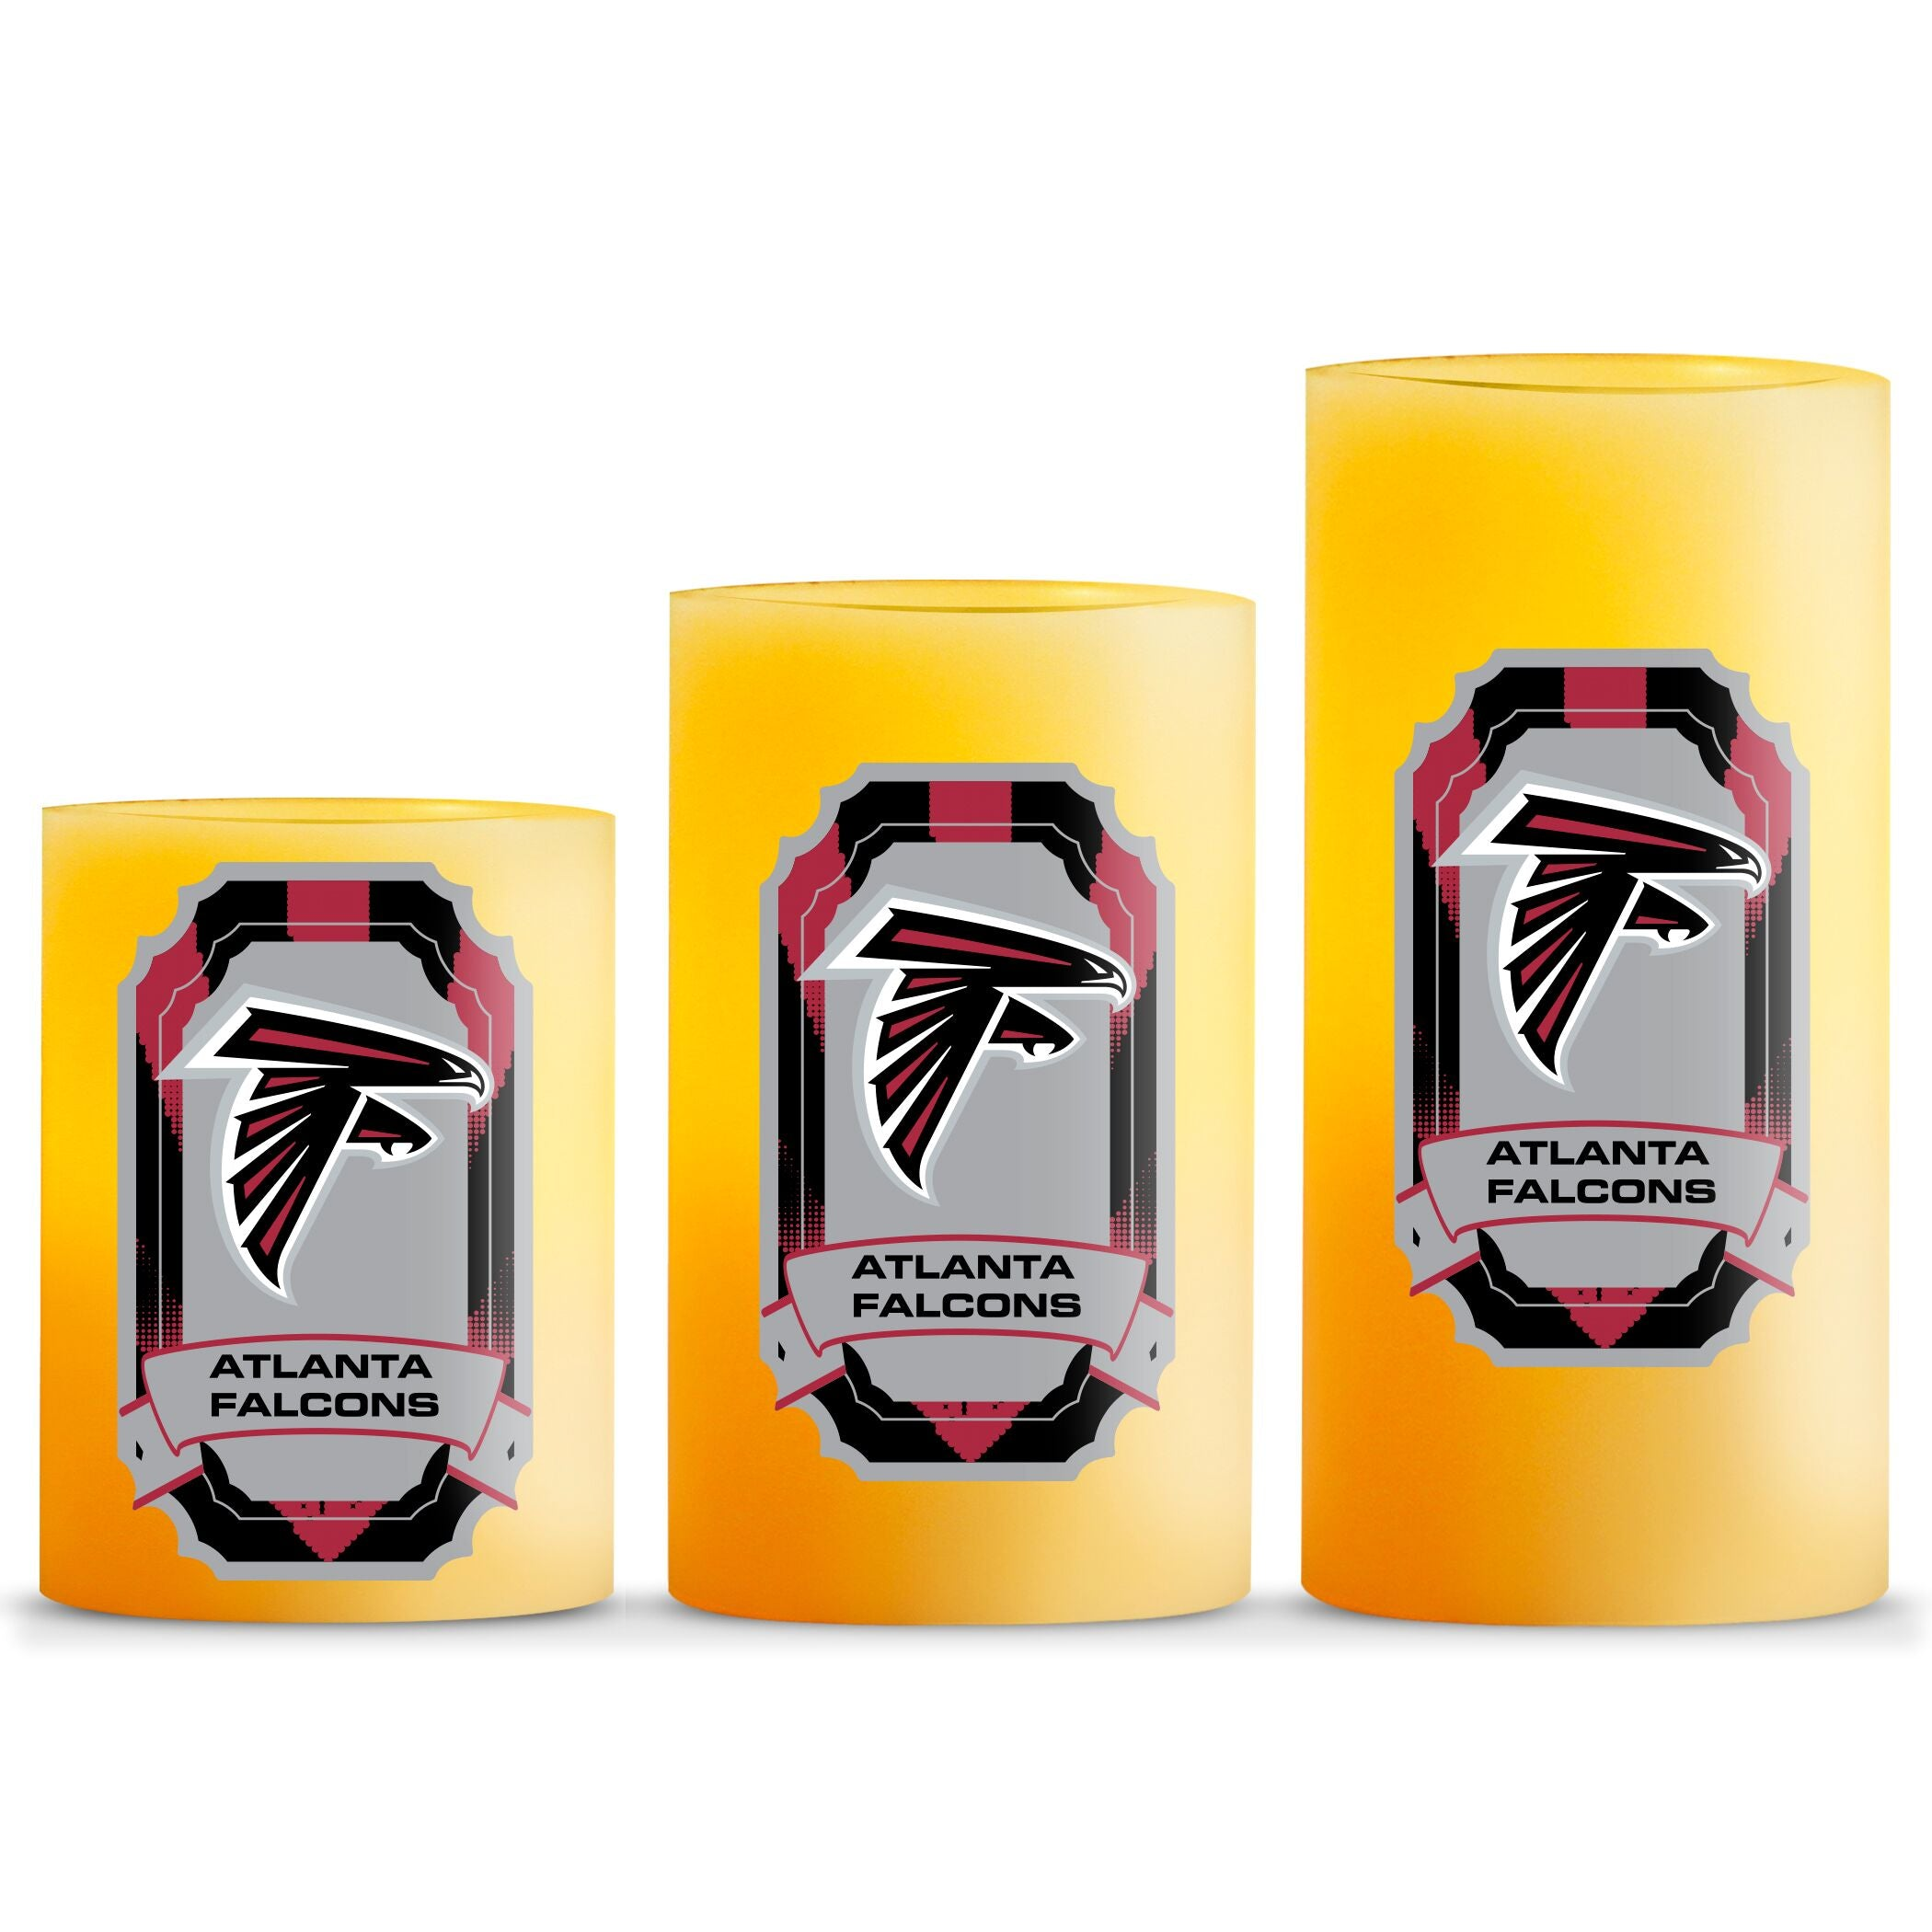 Duckhouse NFL Atlanta Falcons 3-Piece LED Candle Gift Set - Sports Butler